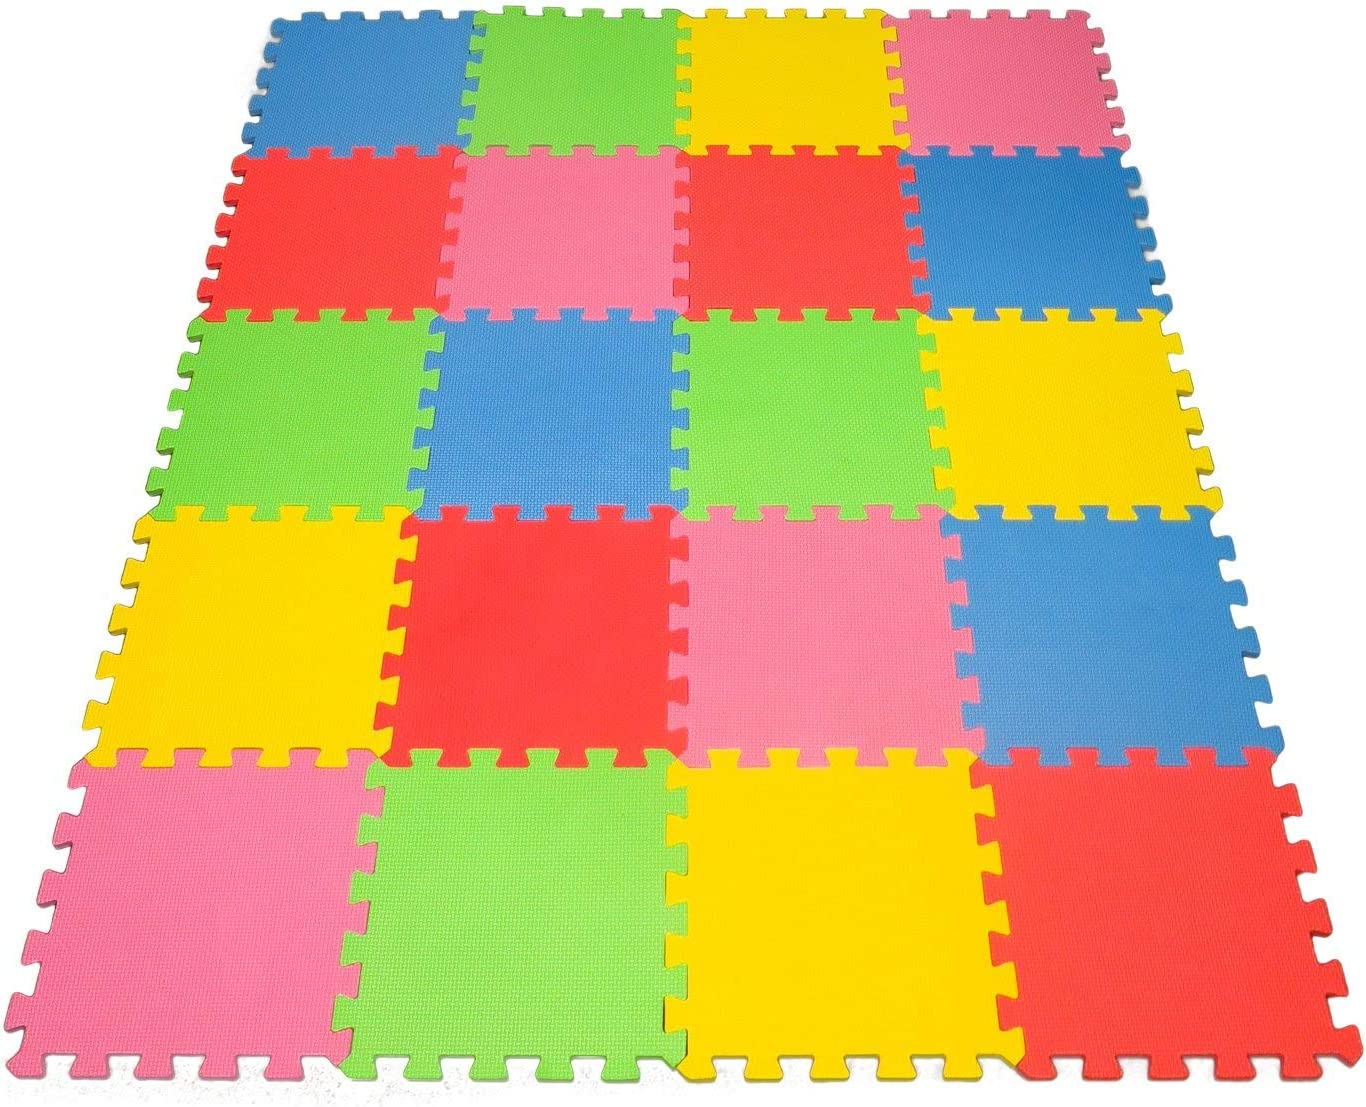 Angels 20 XLarge Foam Mats Toy ideal Gift, Colorful Tiles Multi Use, Create & Build A Safe PLay Area Interlocking Puzzle eva Non-Toxic Floor for Children Toddler Infant Kids Baby Room & Yard Superyard: Toys & Games